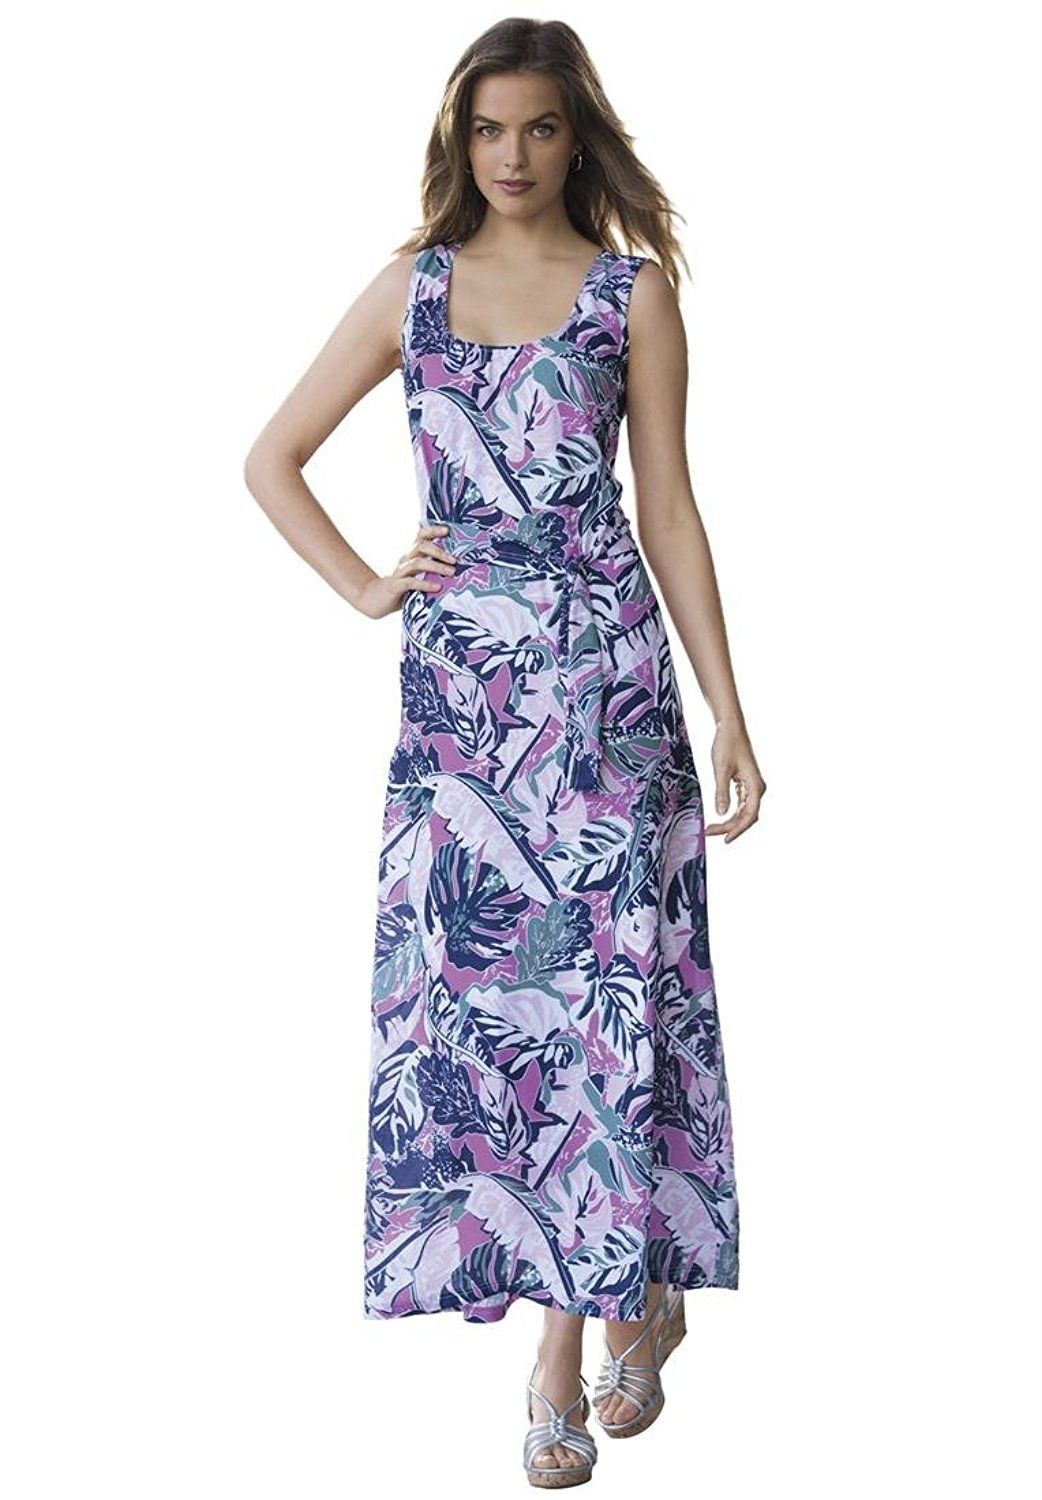 cfc3e25c4a4 Plus Size Jessica London Sleeveless A-Line Maxi Dress -- Discover this  special product